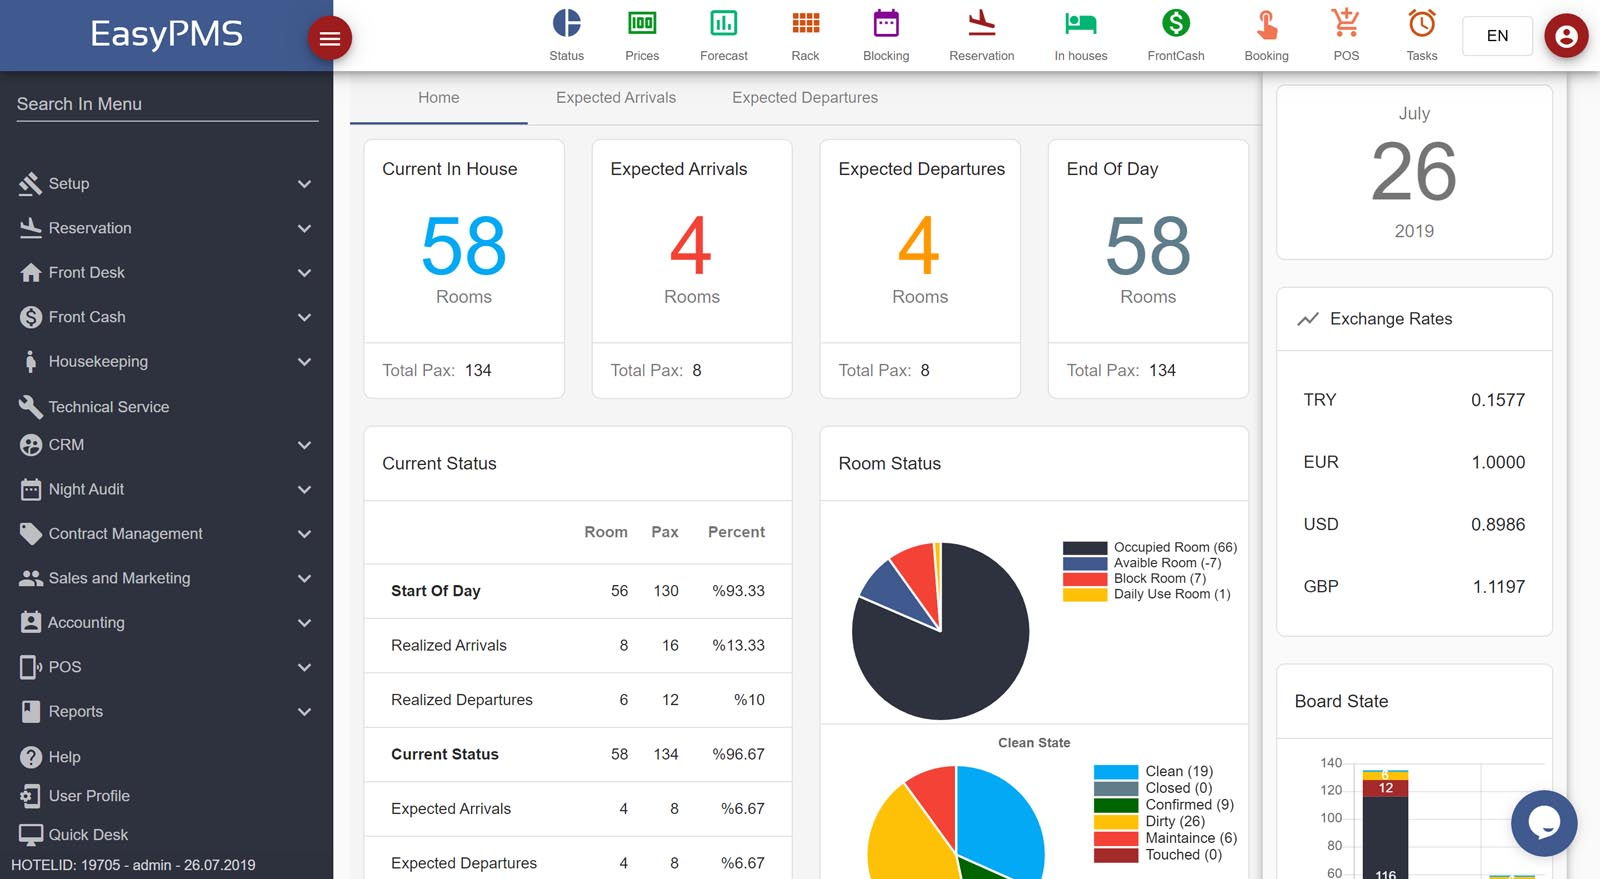 easypms hotel software Daily Status dashboard